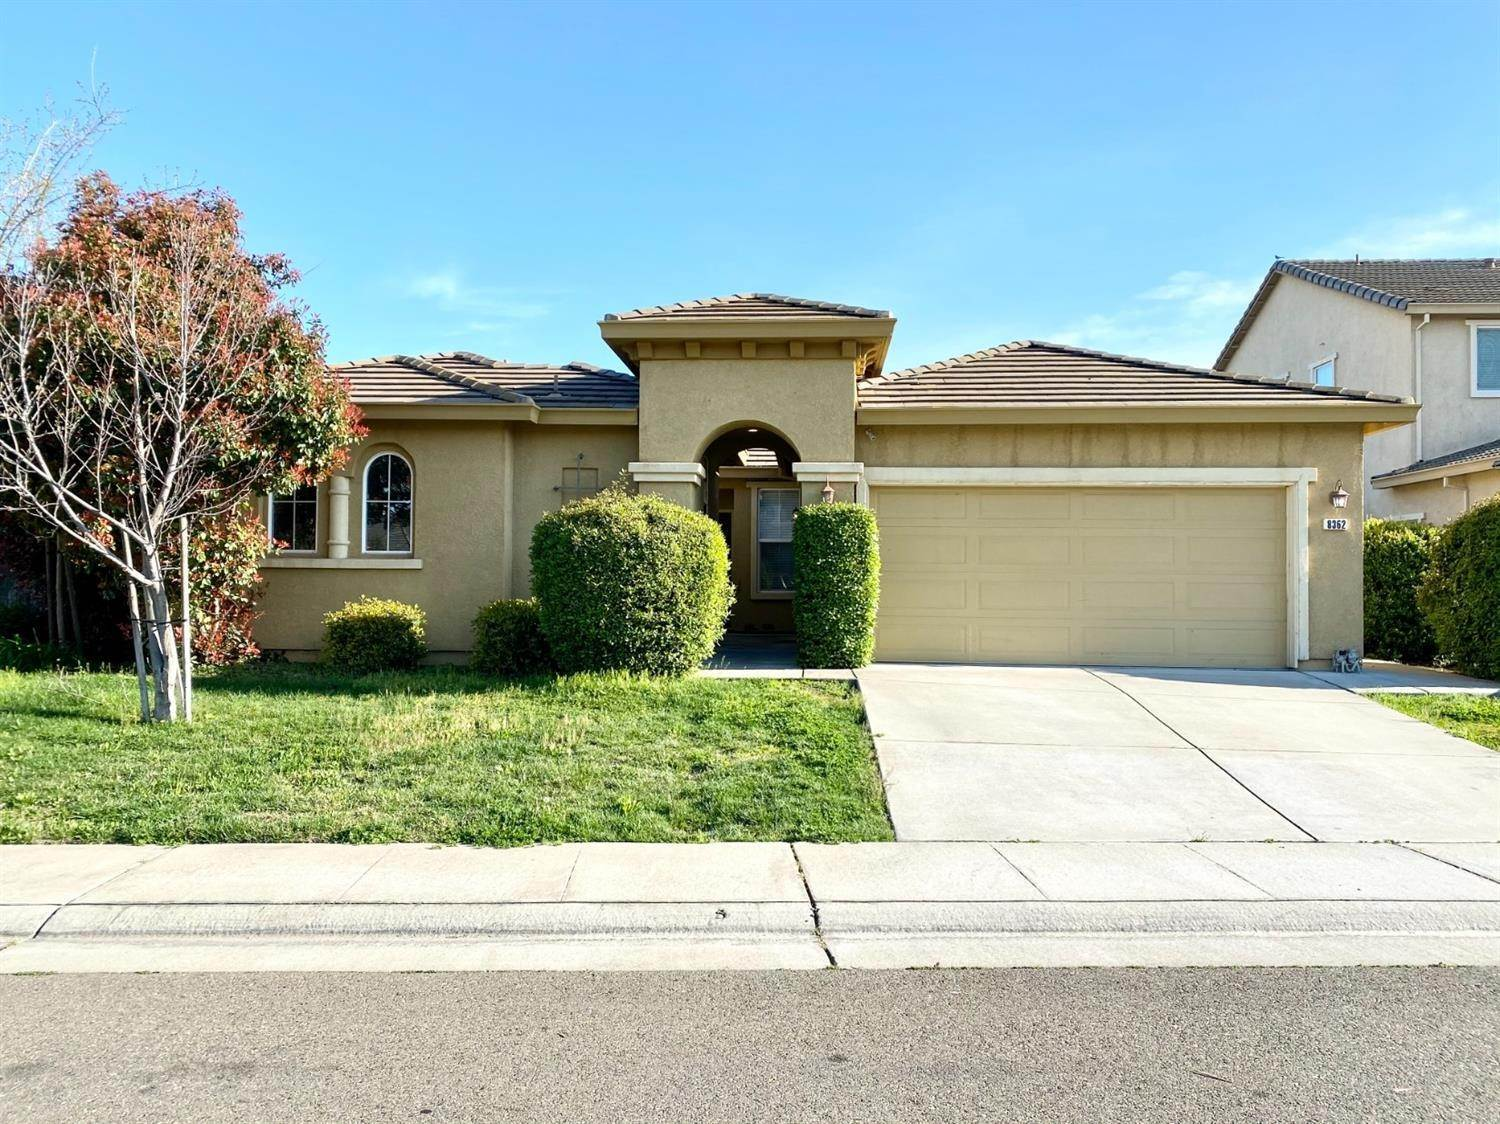 Single Family Homes for Active at 8362 Lollipop Lane Elk Grove, California 95624 United States